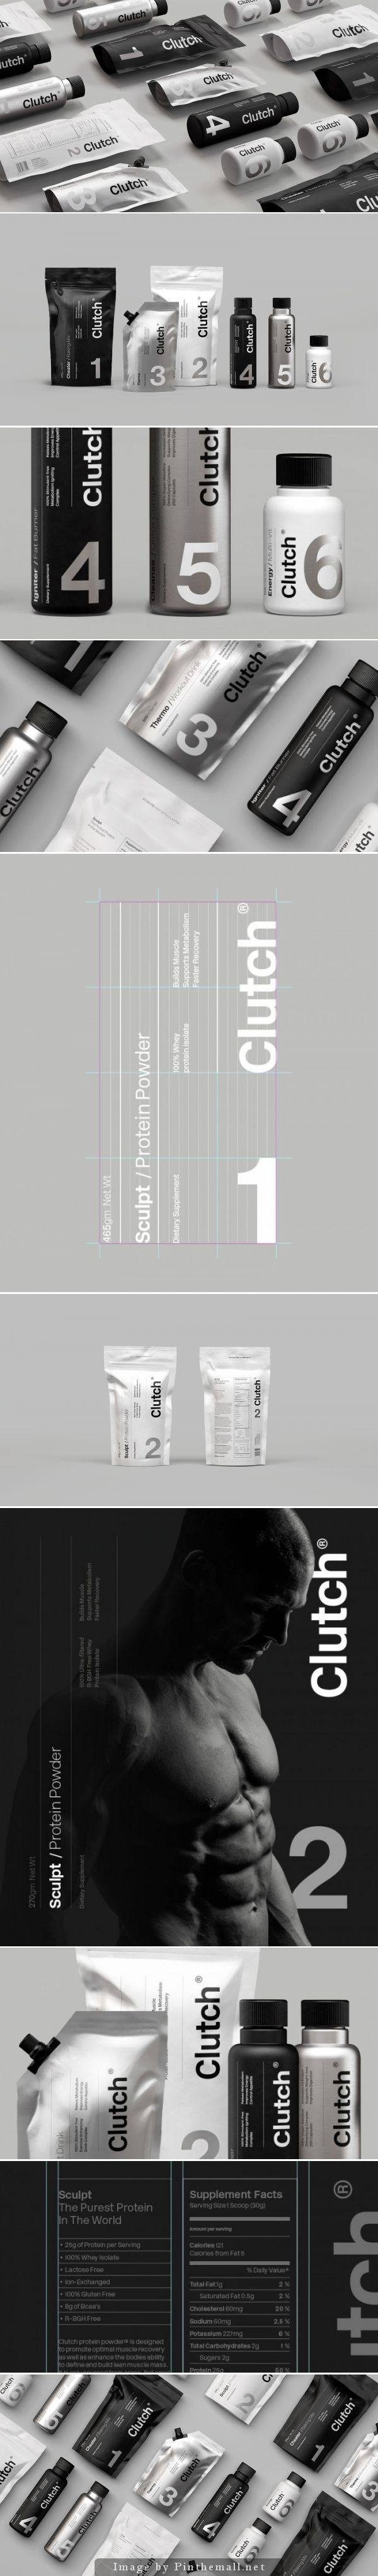 Clutch packaging. Forget the package give me this 6 pack (LOL) curated by Packaging Diva PD created via http://sociodesign.co.uk/clutch-bodyshop/